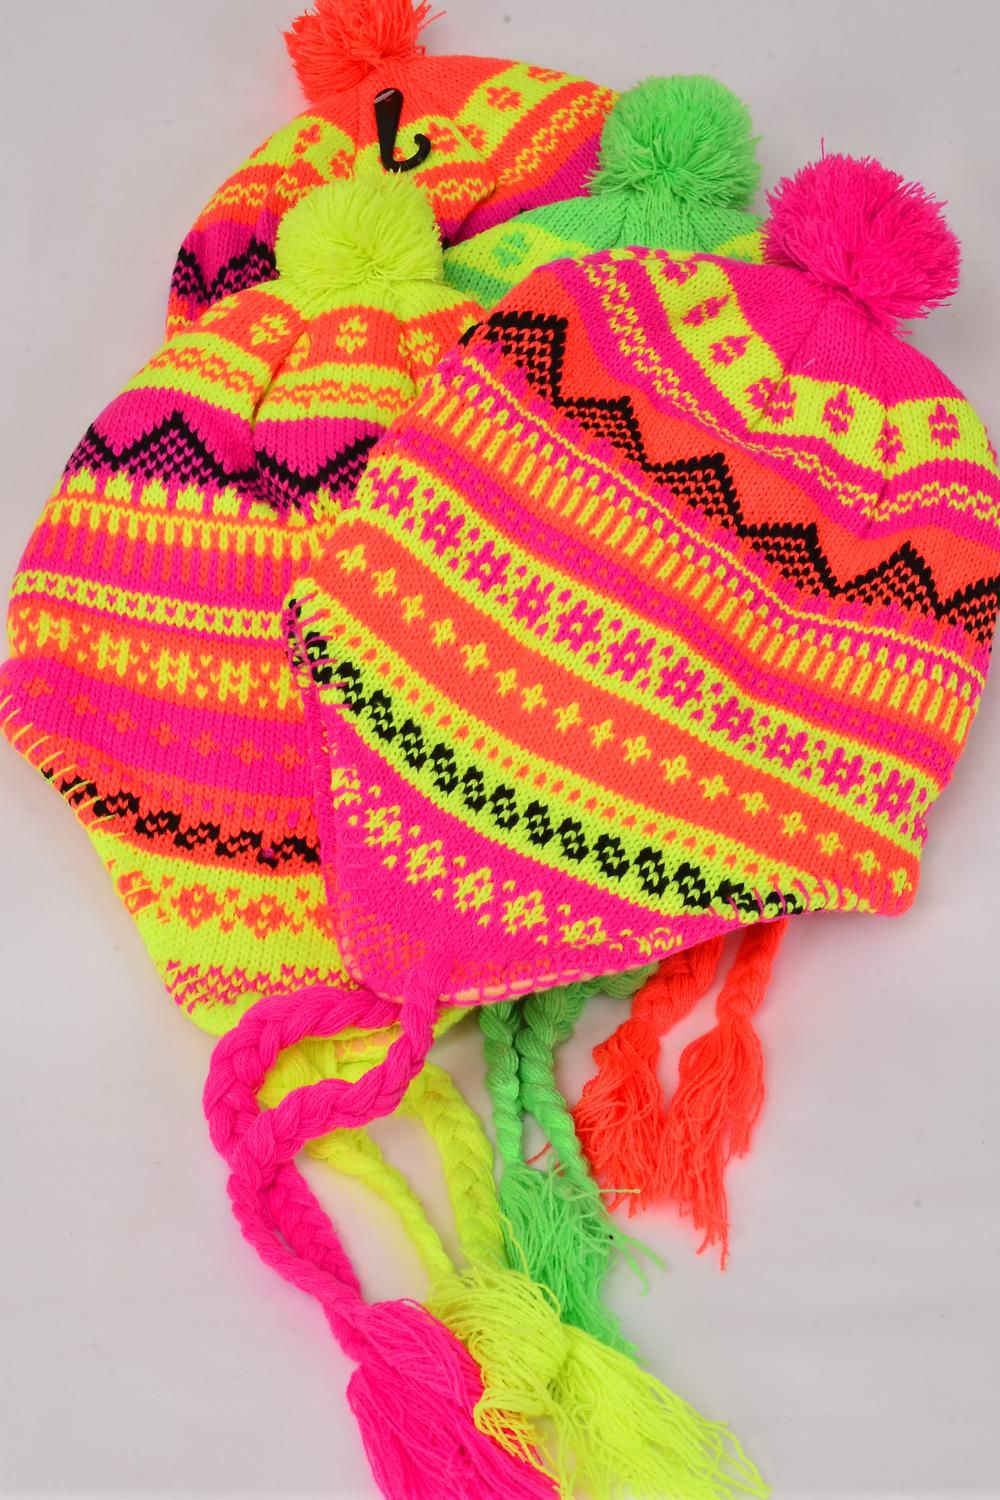 Knit Cap Neon Eskimo With Ball Polyester Heavy Weight/DZ 3 Hot Pink,3 Orange,3 Lime,3 Neon Yellow, 4 Color Asst,Hang Tag & OPP Bag & UPC Code -